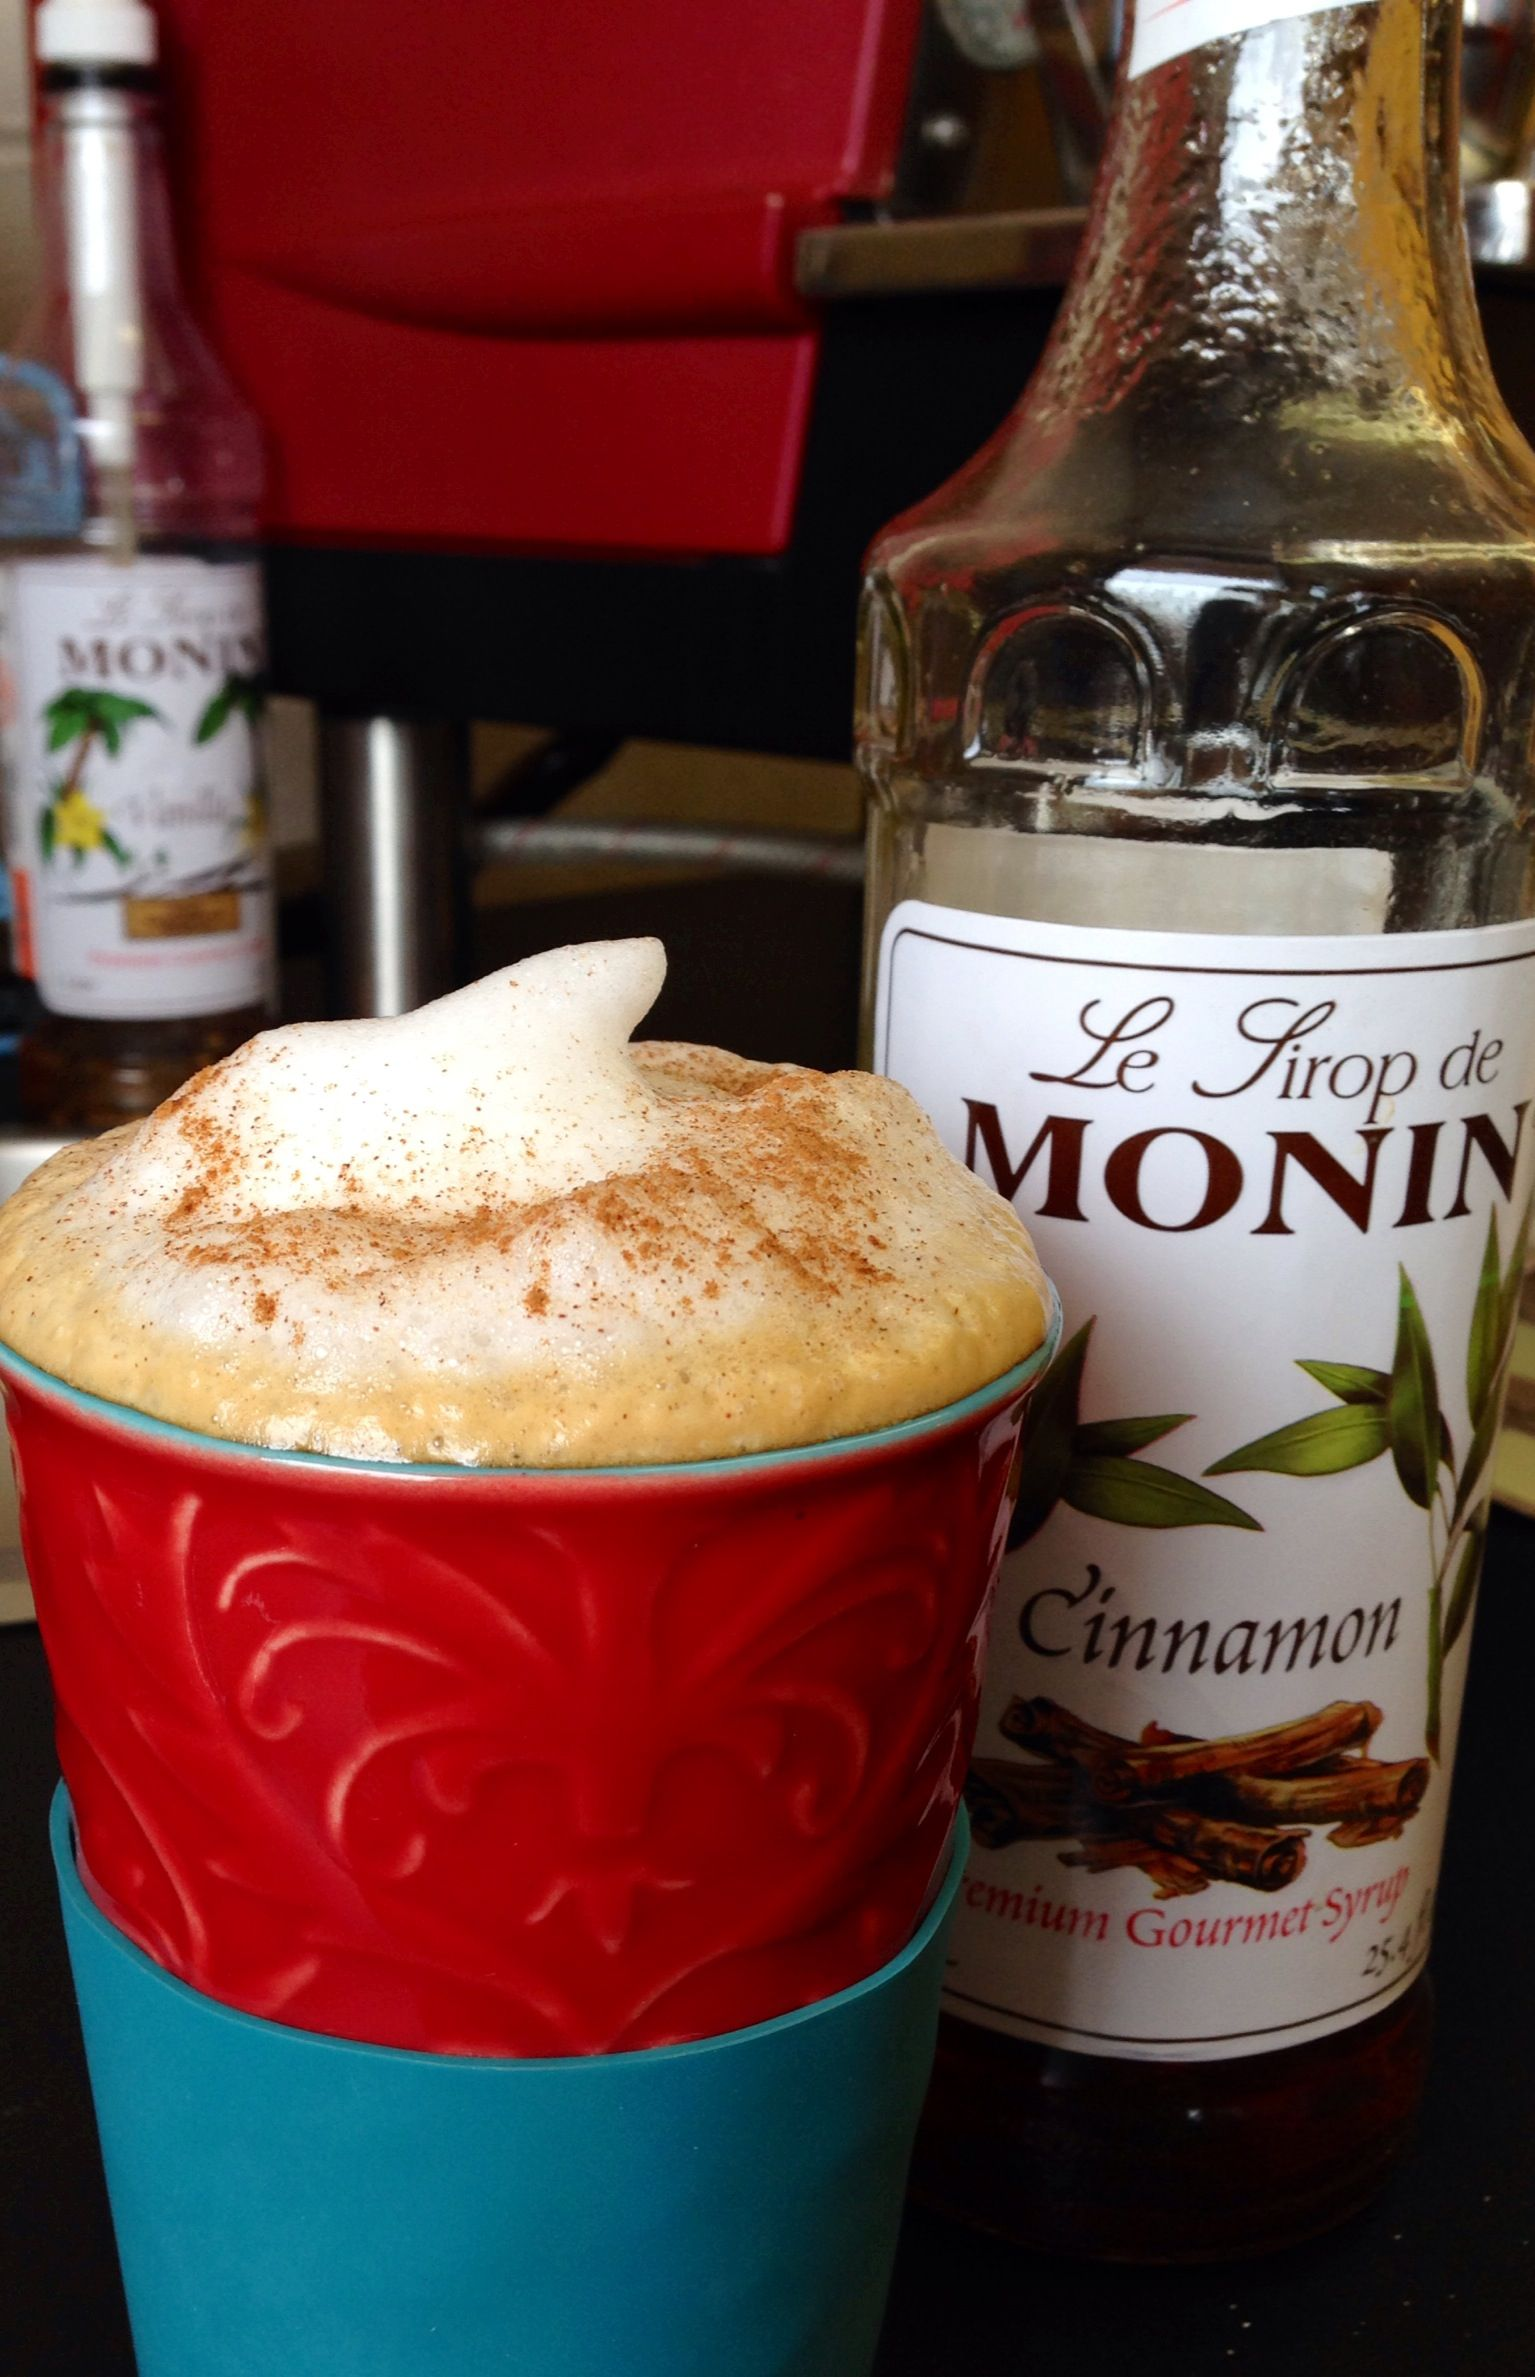 Cinnamon Dolce Latte With Monin Syrups Shelly Voight Jayne S Coffee Shop Driggs Idaho International Desserts Cinnamon Dolce Latte Cinnamon Dolce